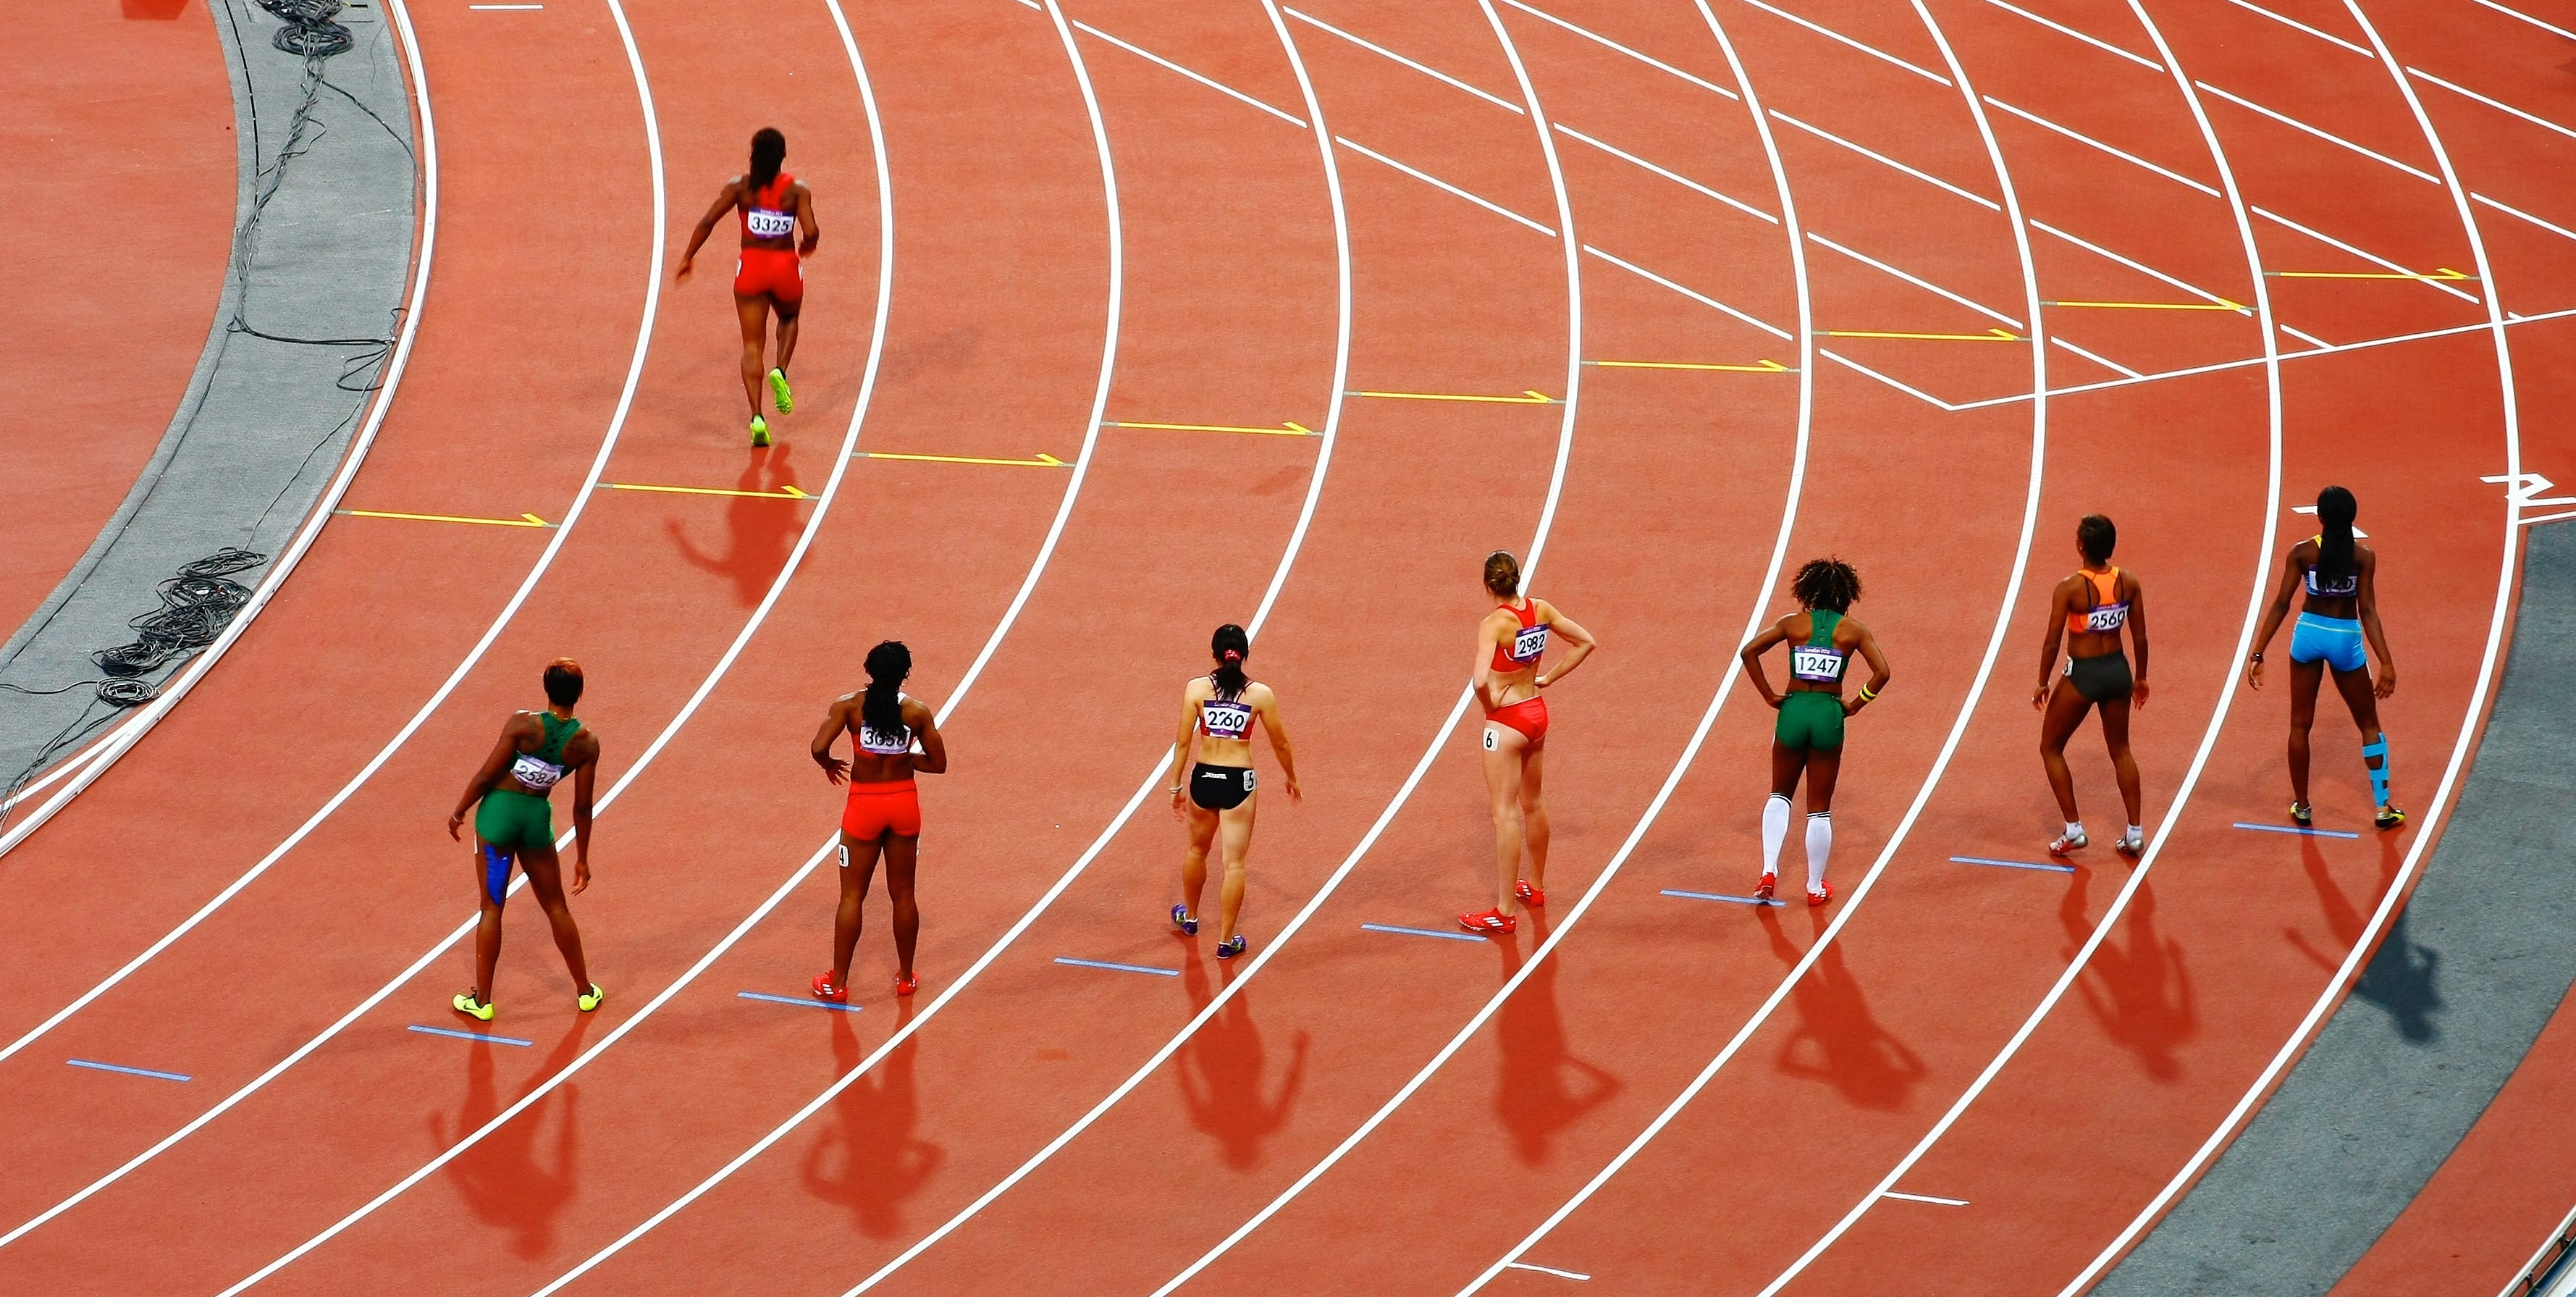 A photo of sprinters on a track waiting at the starting line.